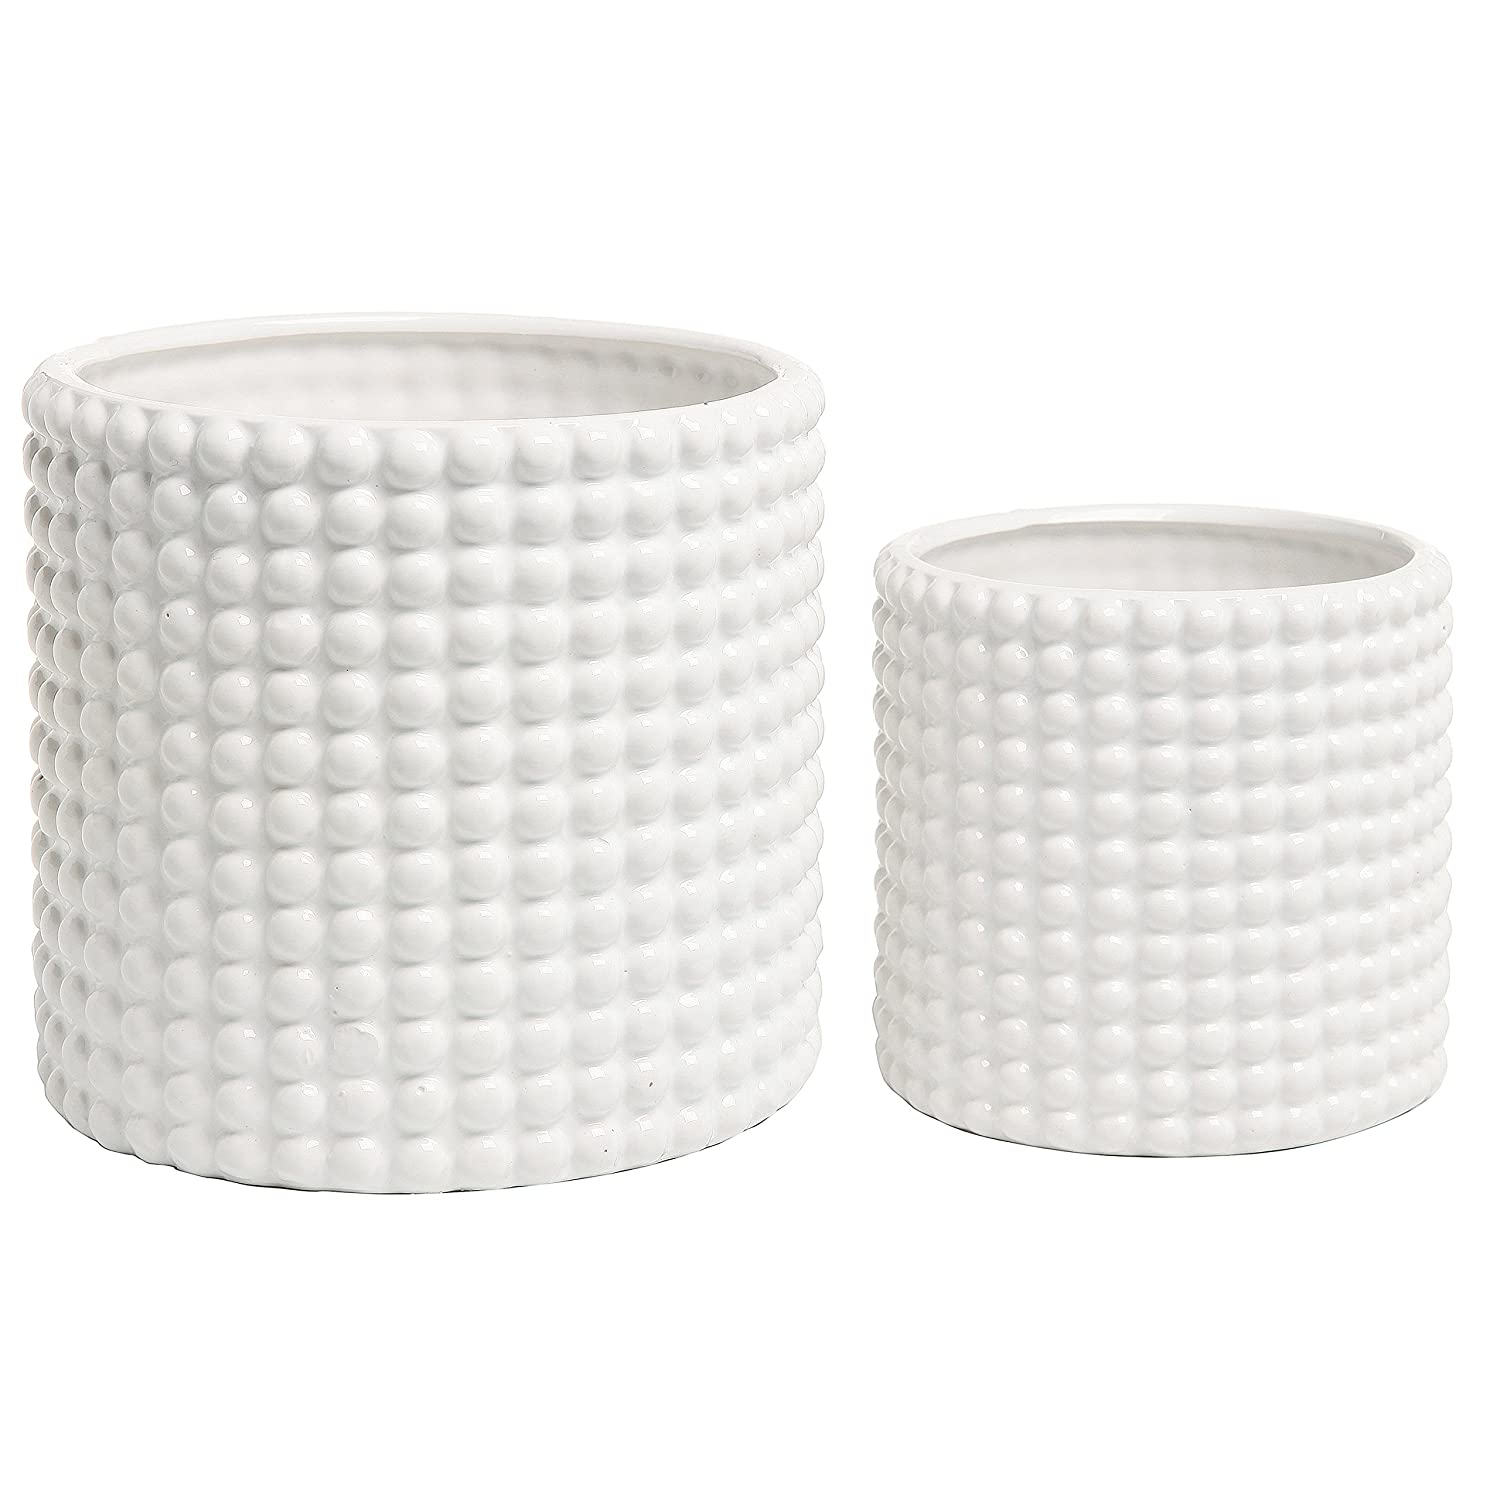 MyGift Set of 2 White Ceramic Vintage-Style Hobnail Textured Flower Planter Pots Storage Jars